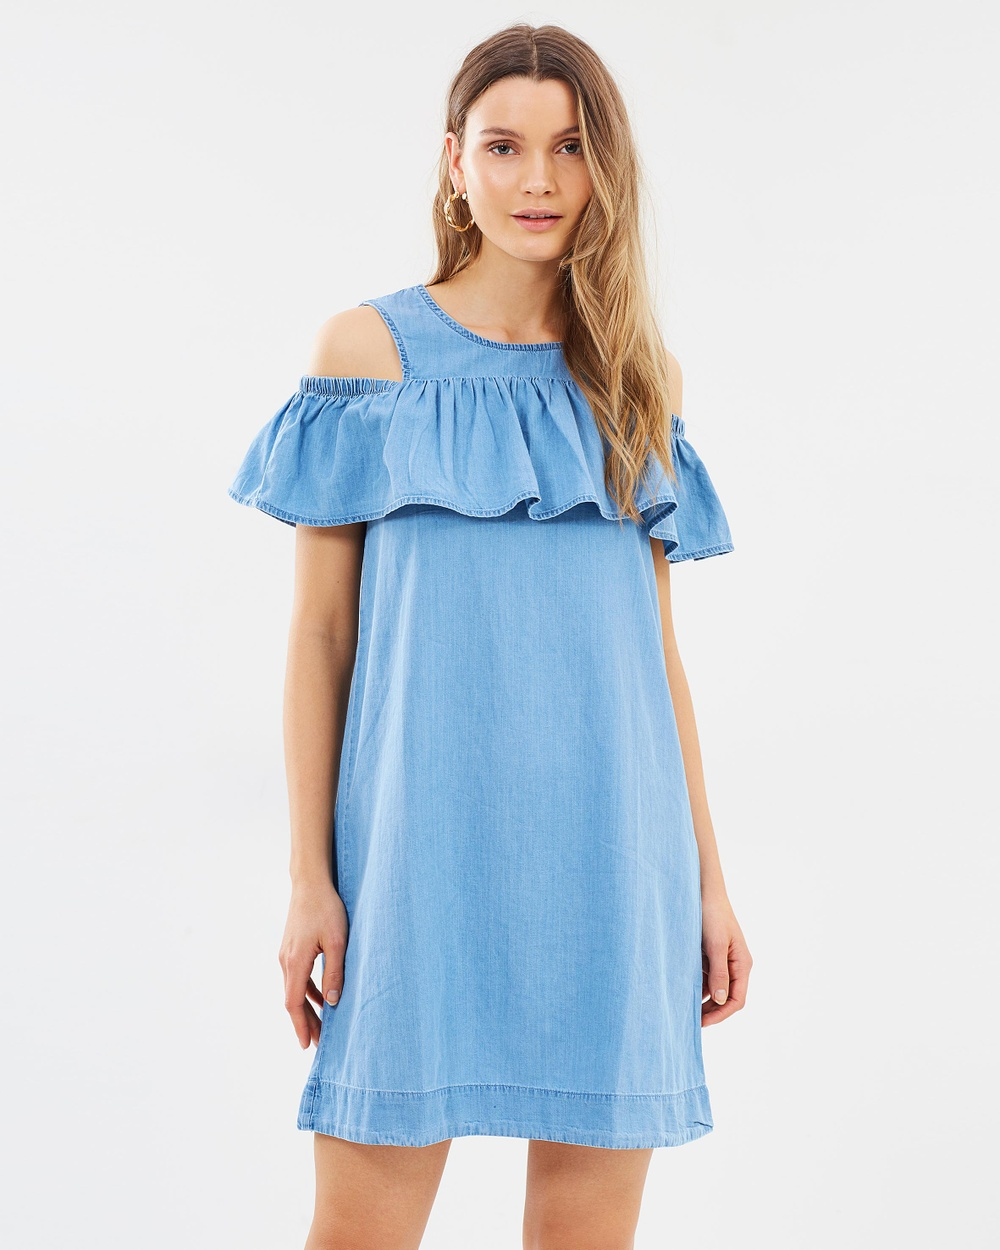 Vero Moda Cold Shoulder Organic Cotton Dress Dresses Light Blue Cold Shoulder Organic Cotton Dress